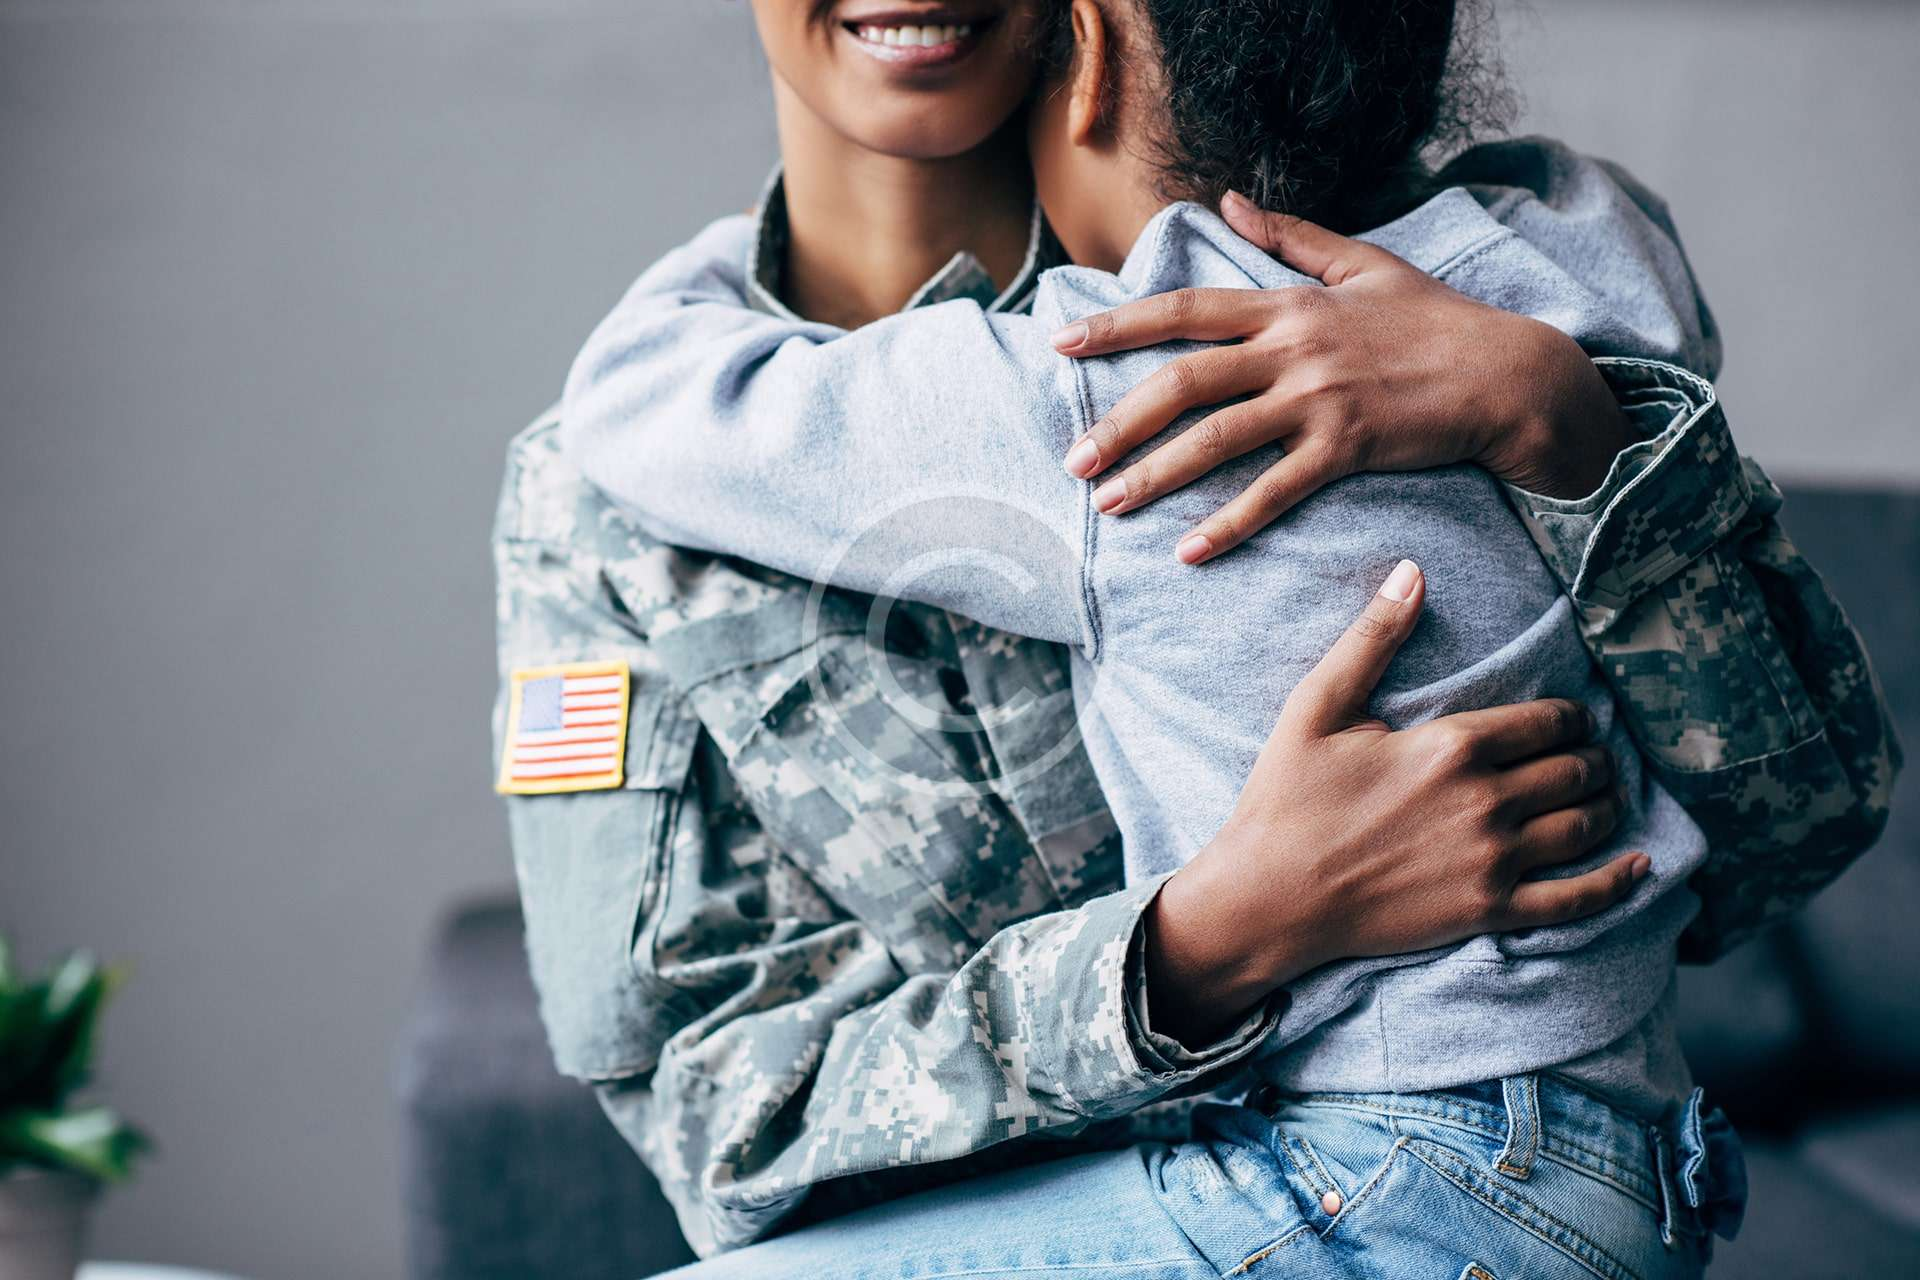 Veteran & Military Support Services